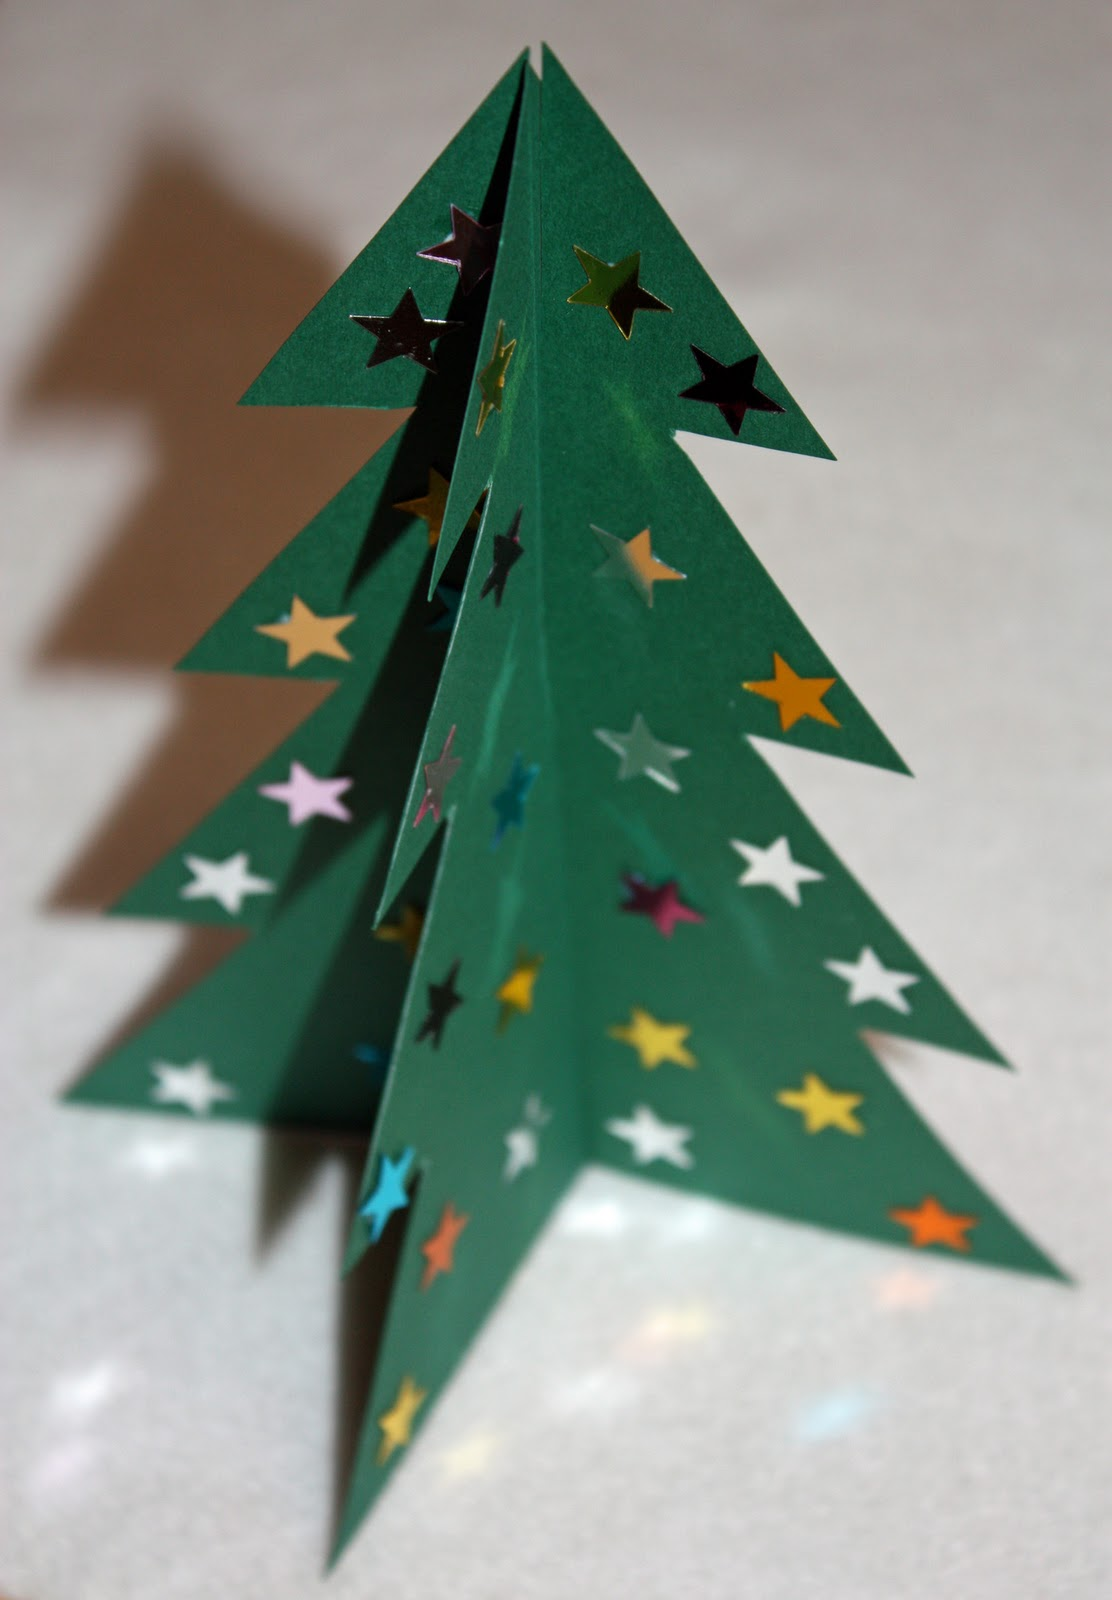 ... All Ages!: Make a 3D Card Christmas Tree - with Printable Template